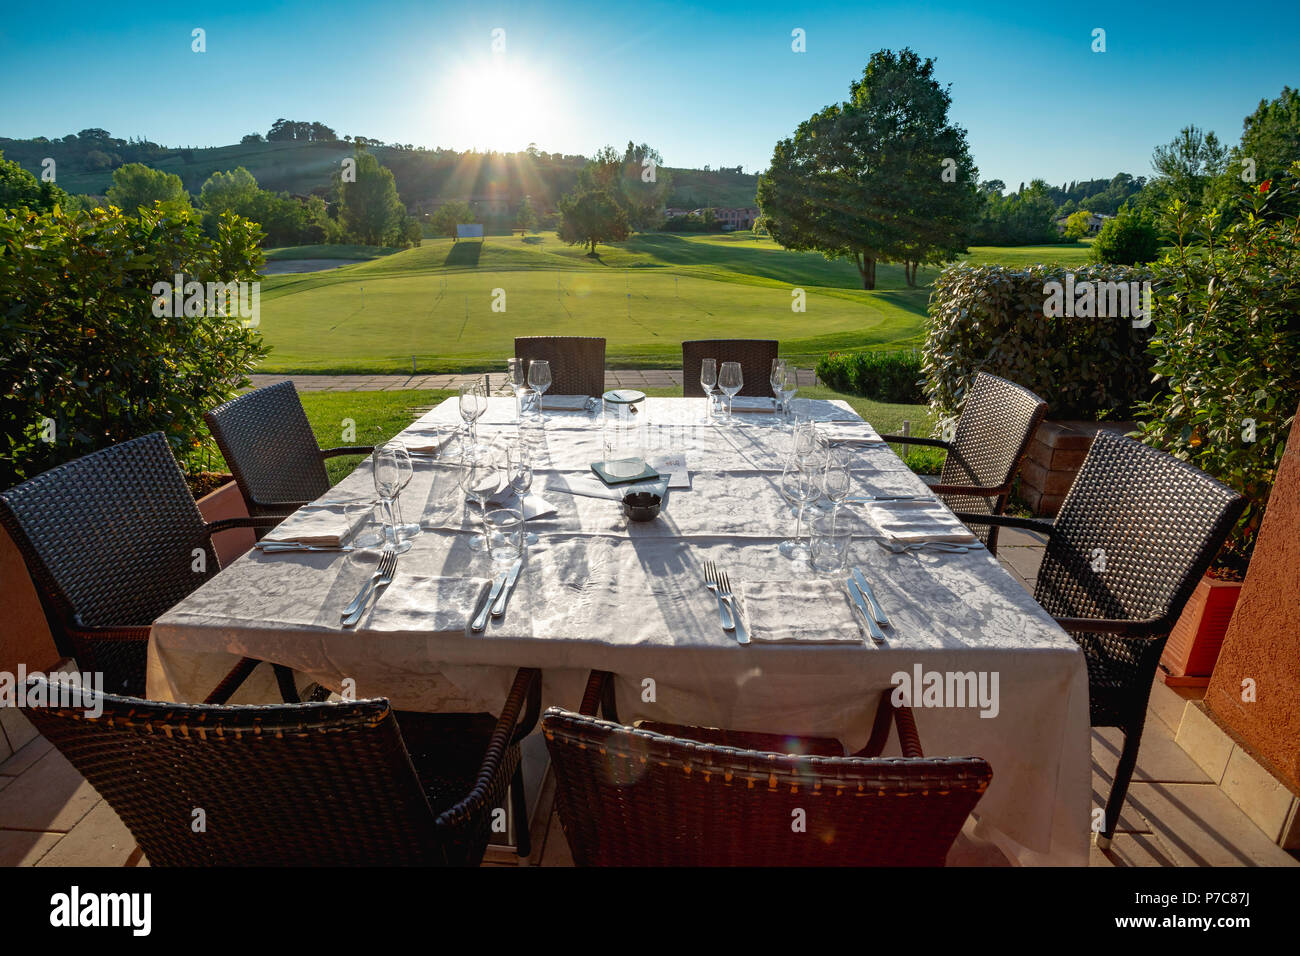 Outdoor restaurant terrace on golf club Le Fonti in Castel San Pietro Terme, Italy Stock Photo